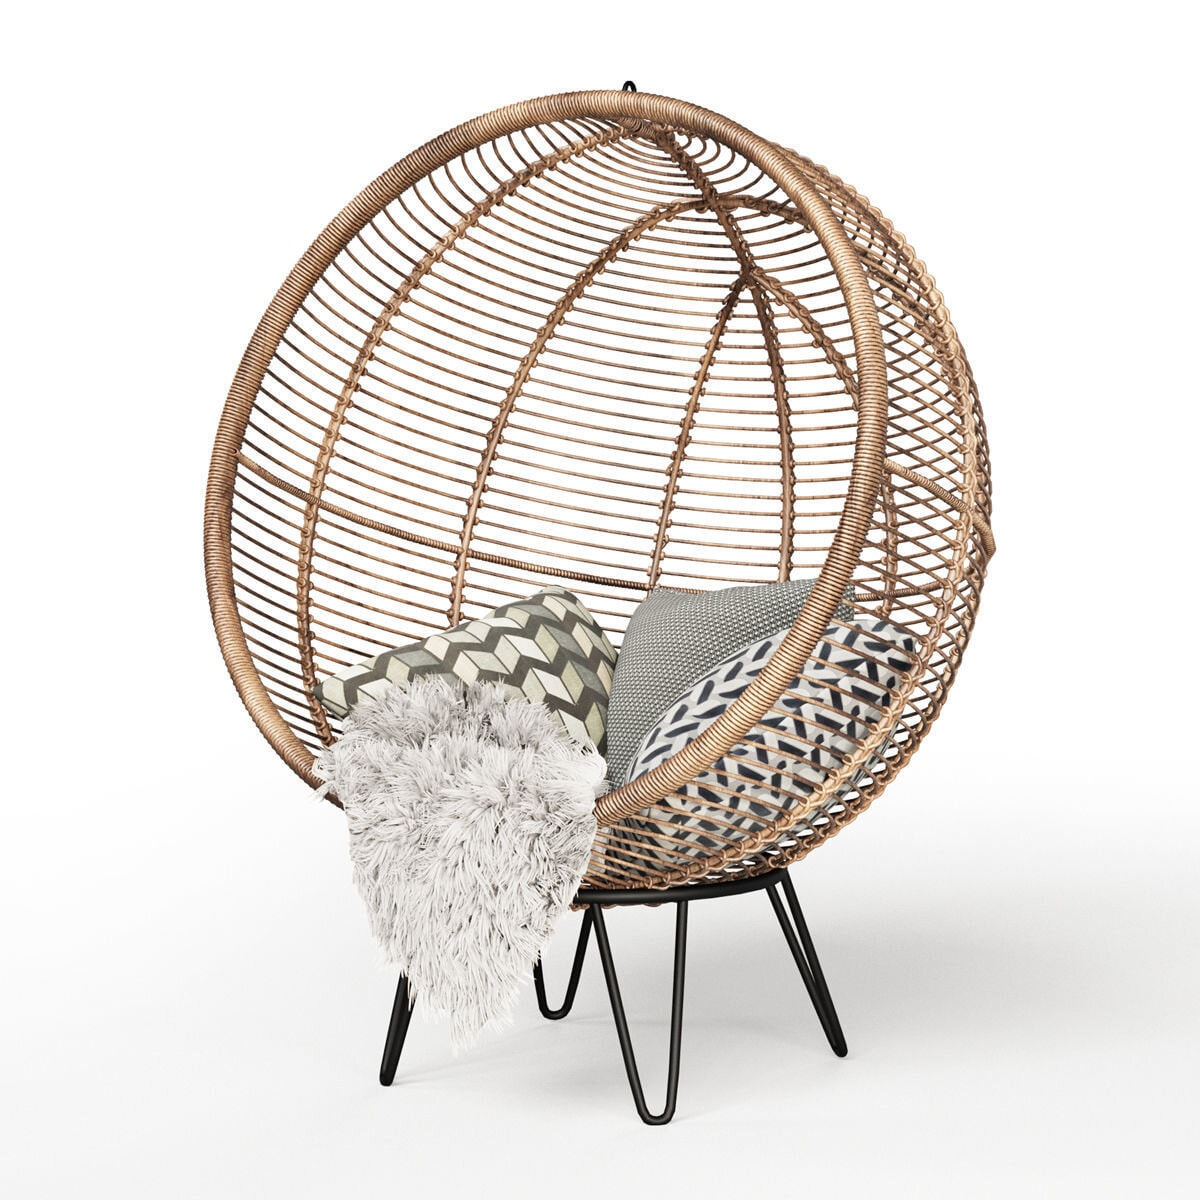 A real statement piece of furniture for any home!  Round Rattan Cocoon Chair - Cox & Cox